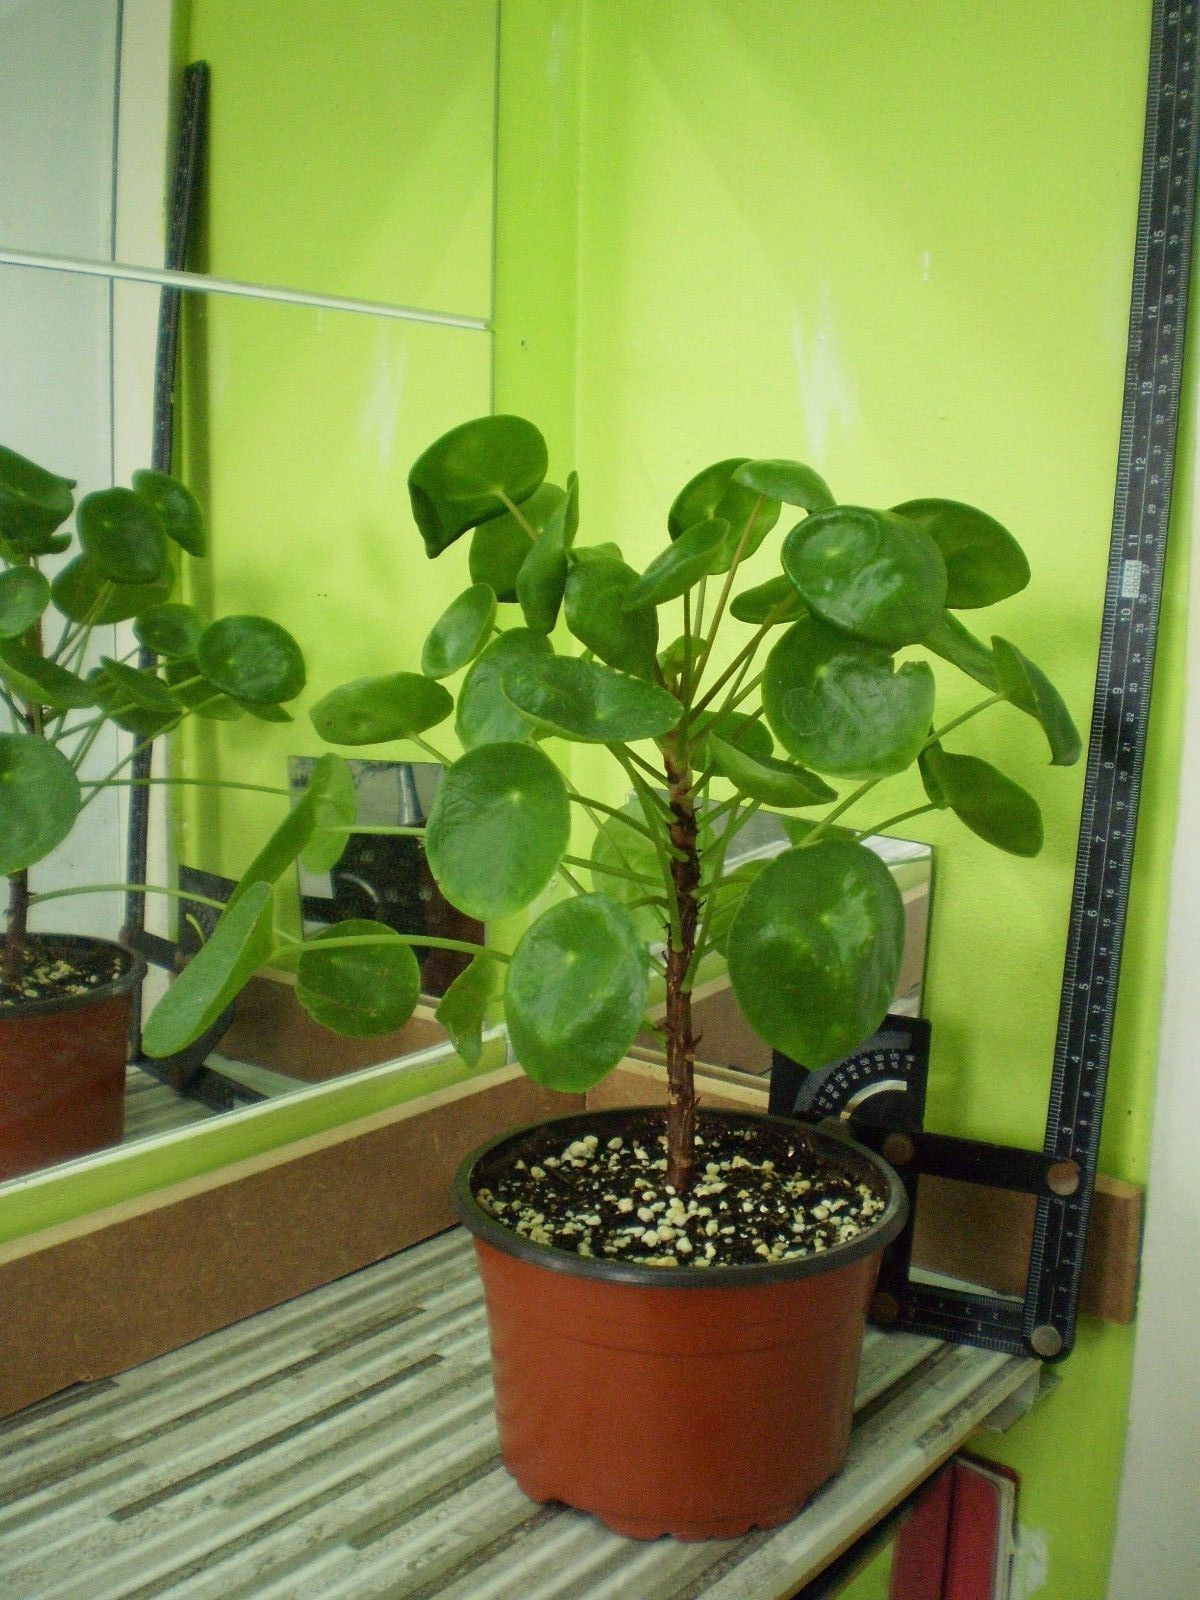 Sale Chinese Money Plant Pilea Peperomioides Rare